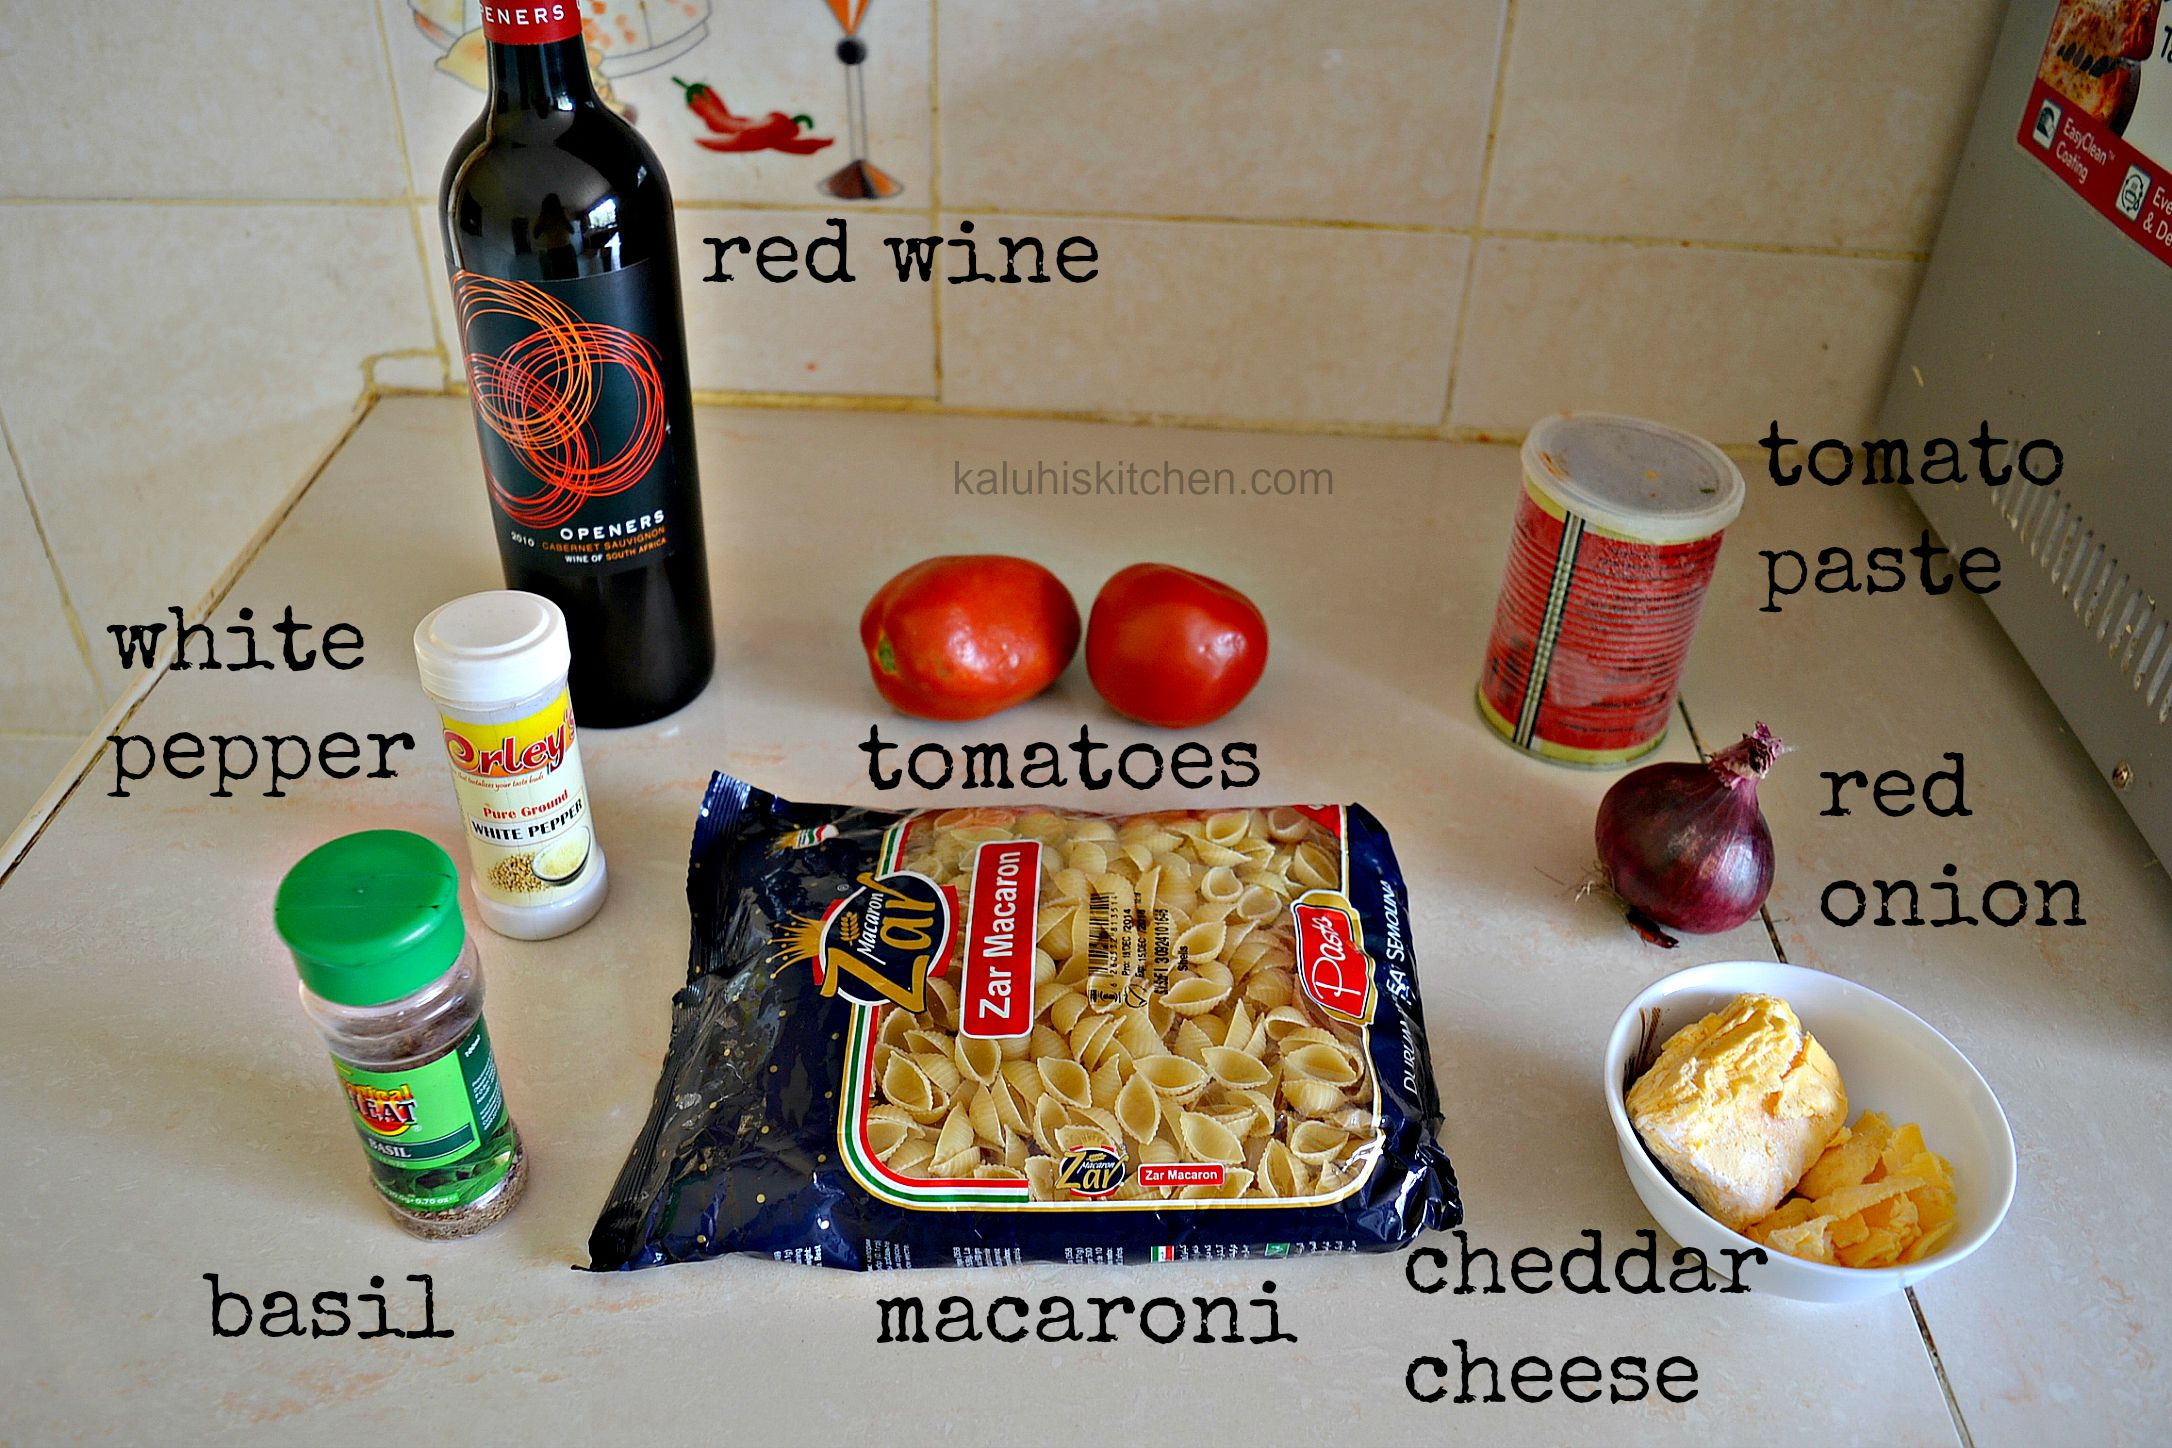 red wine and tomato cheesy pasta ingredients_ how to make pasta that has wine_kaluhiskitchen.com